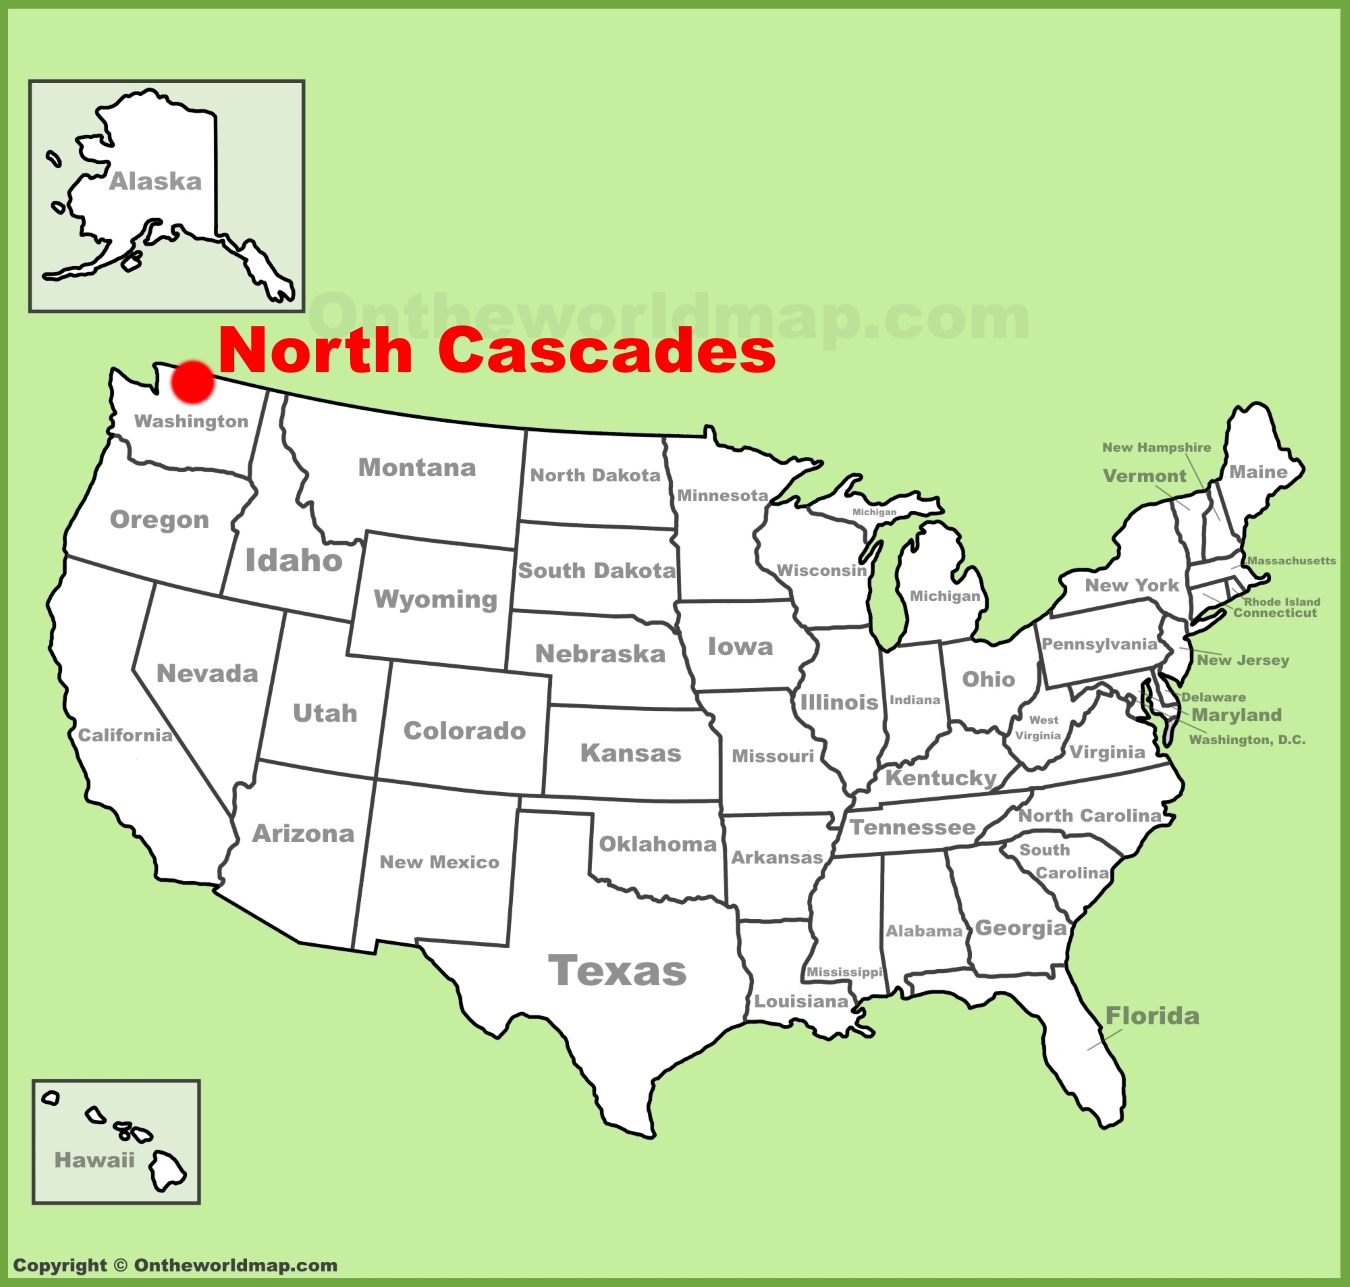 North Cascades location on the U.S. Map on